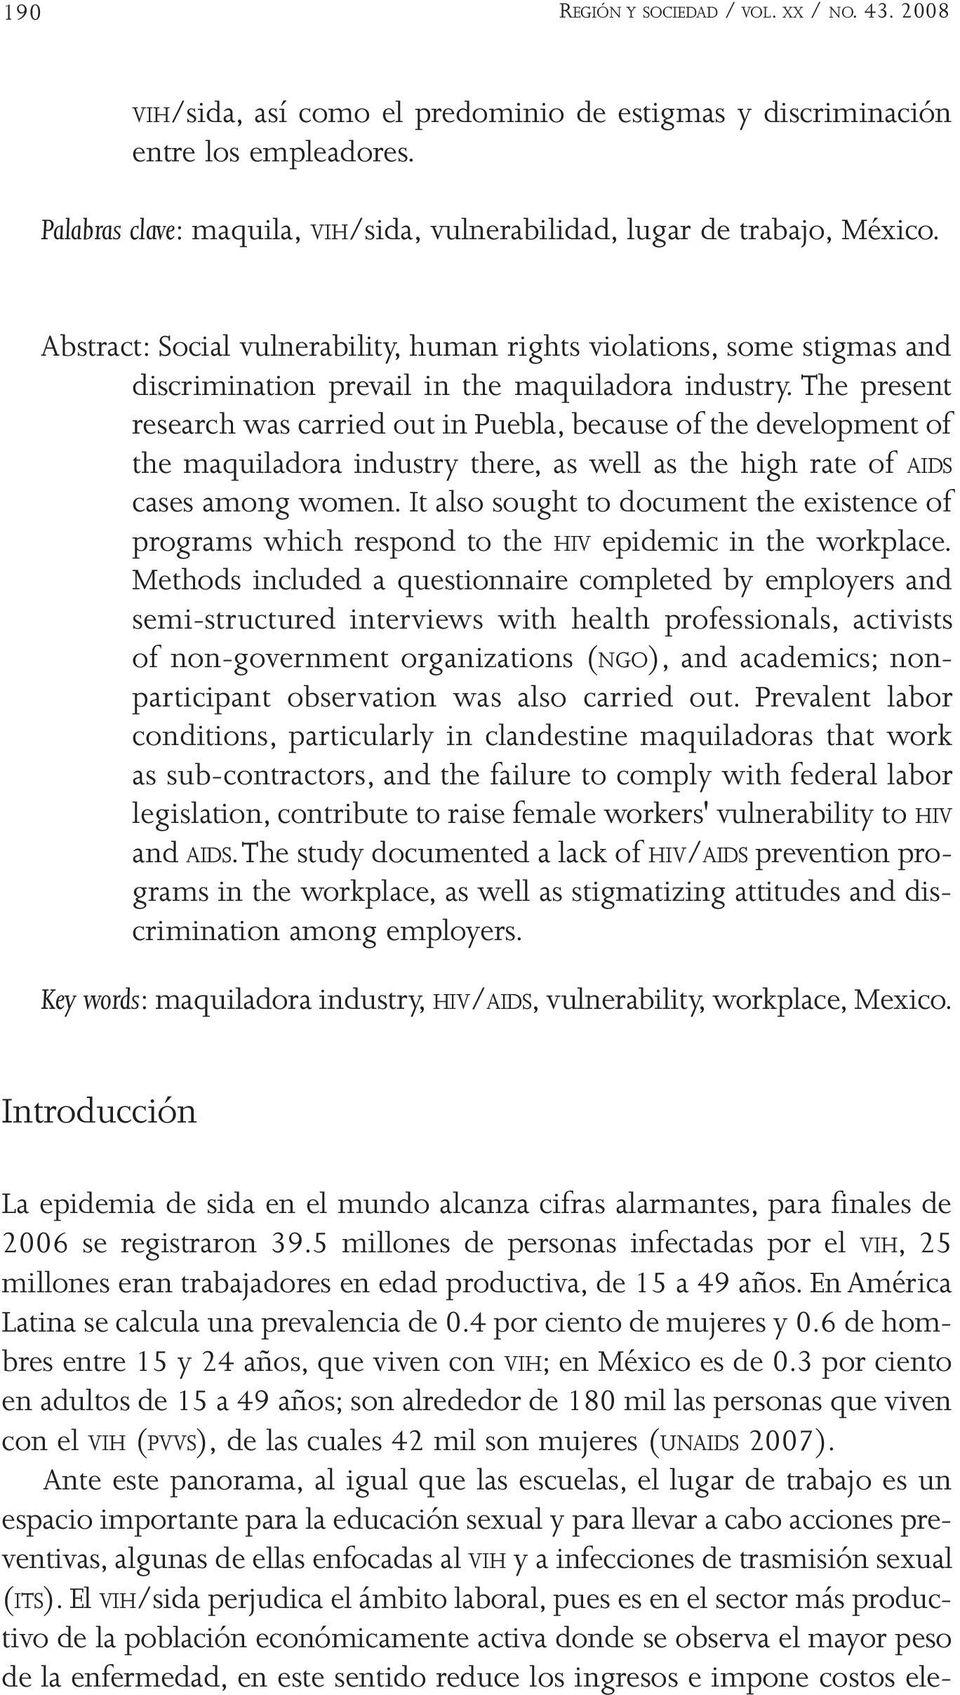 Abstract: Social vulnerability, human rights violations, some stigmas and discrimination prevail in the maquiladora industry.